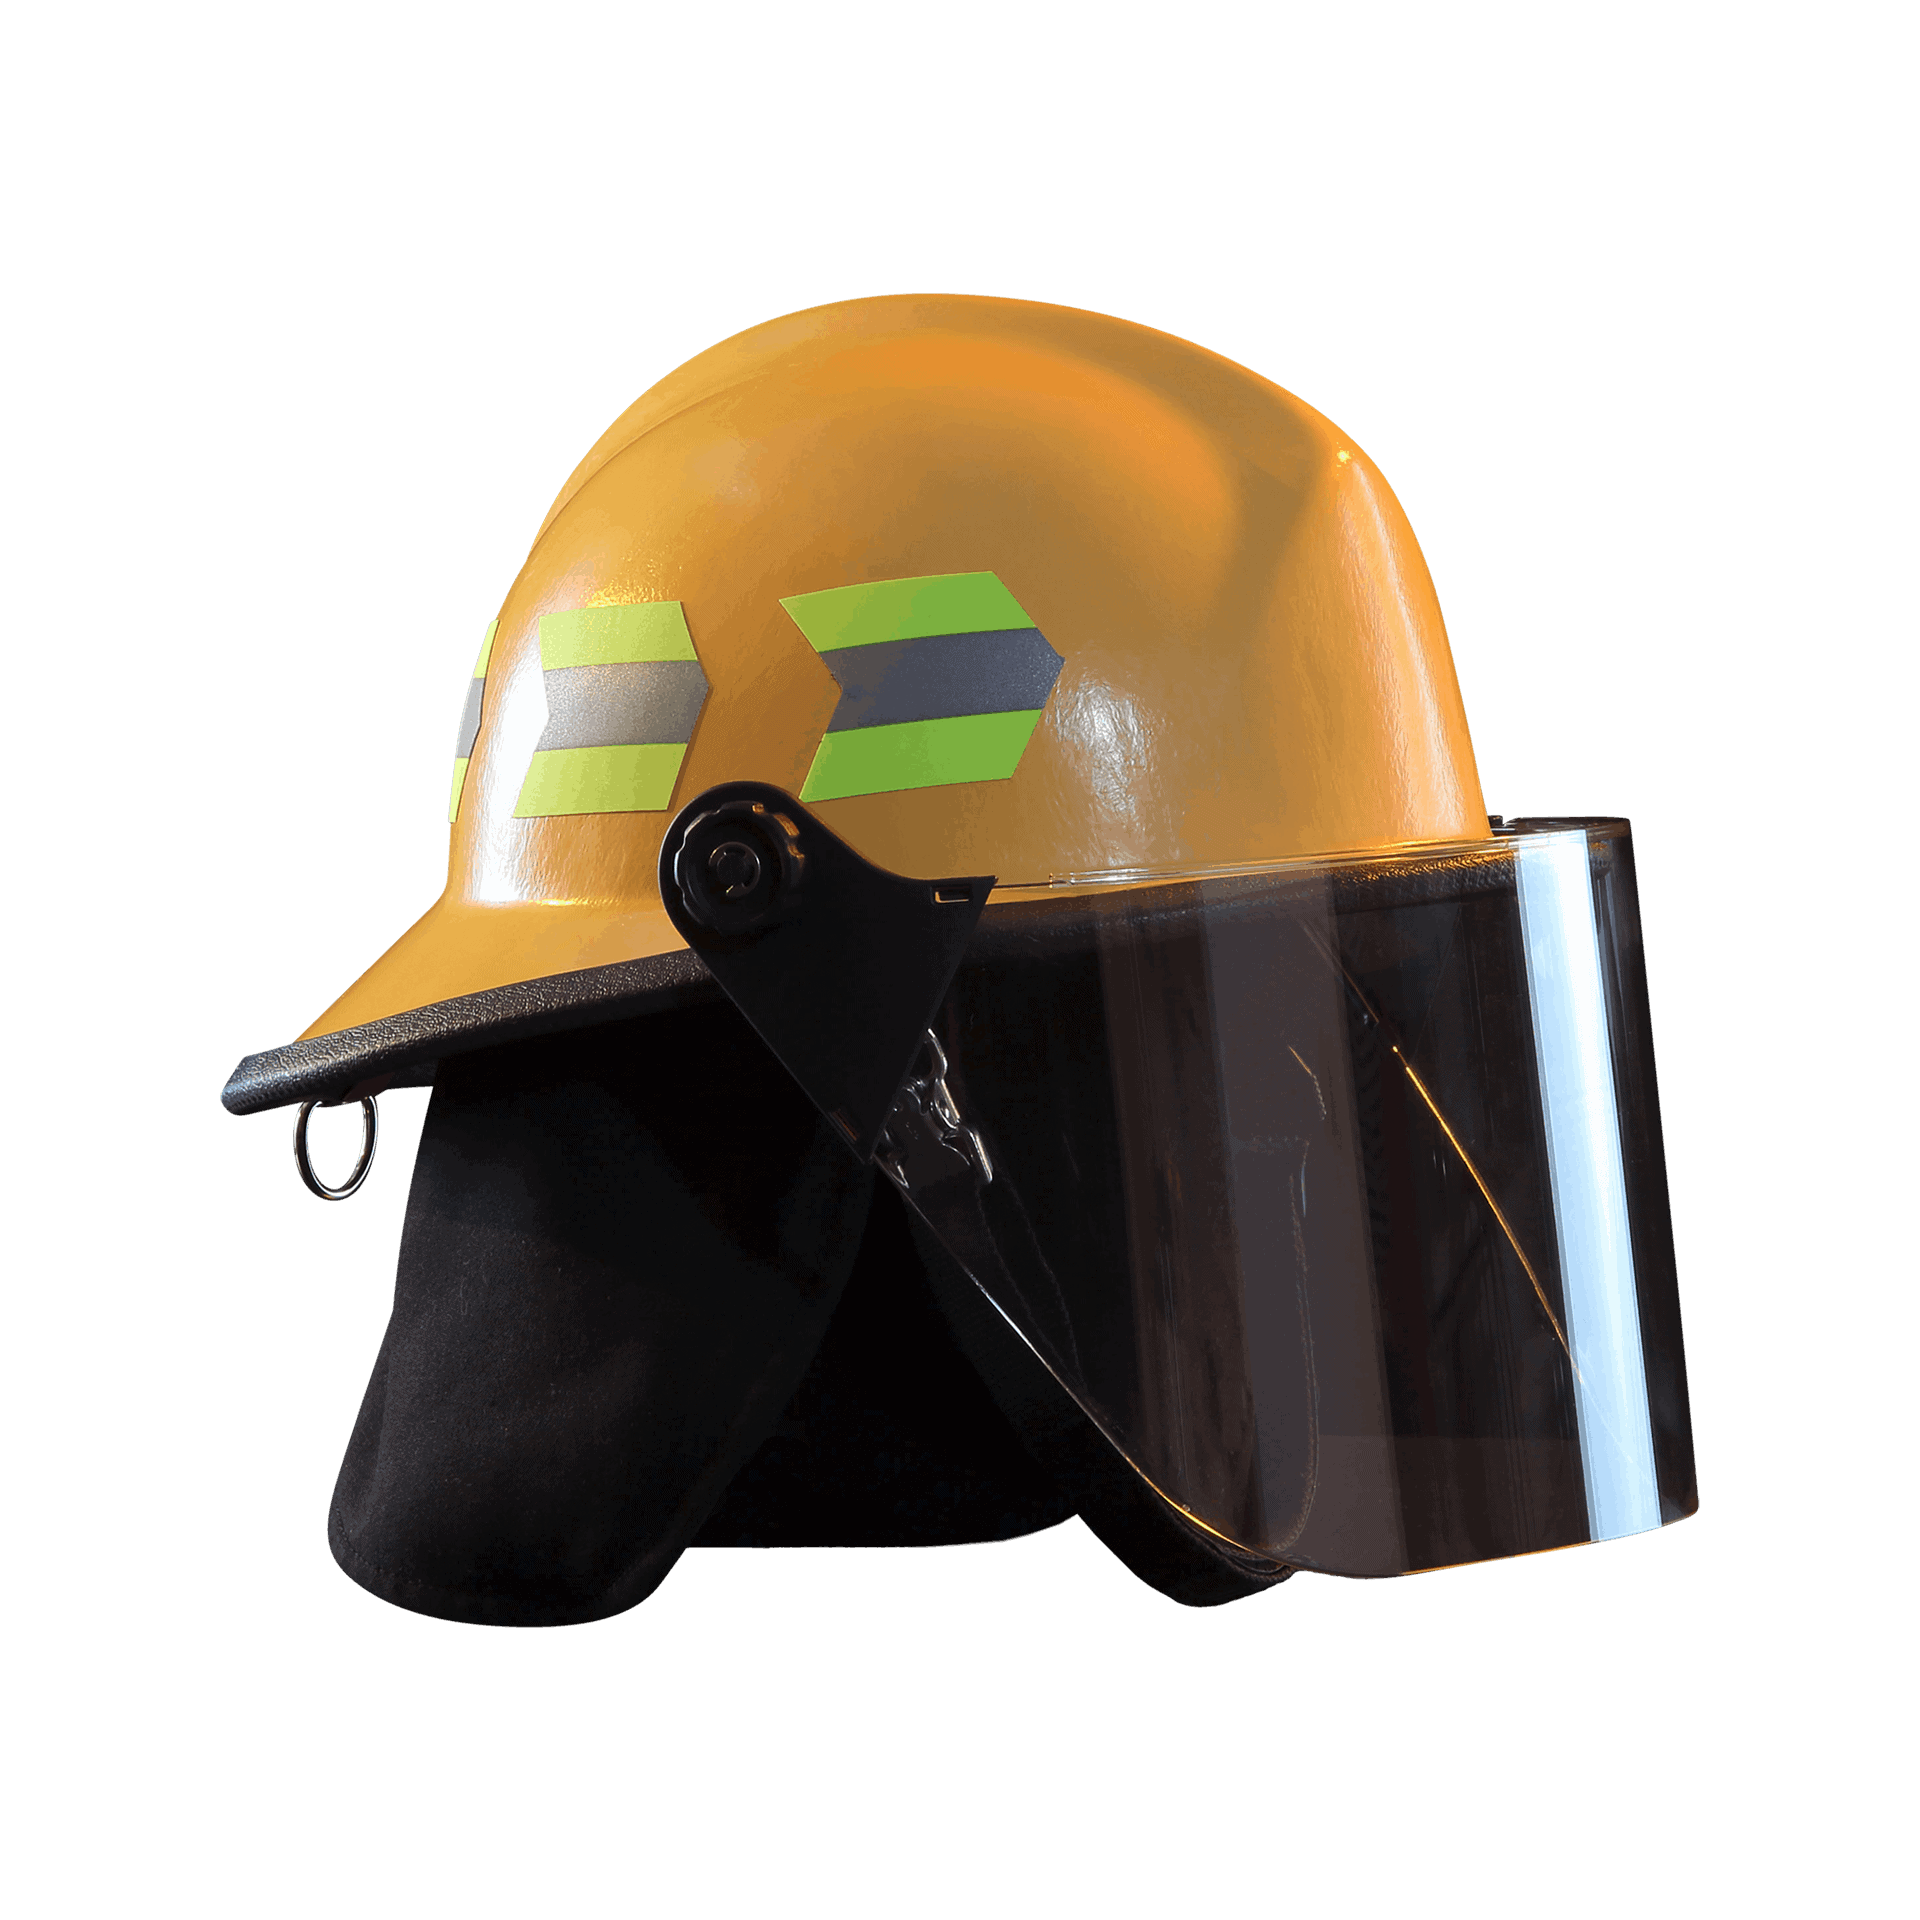 Fire-Dex Modern Helmet with visor - yellow